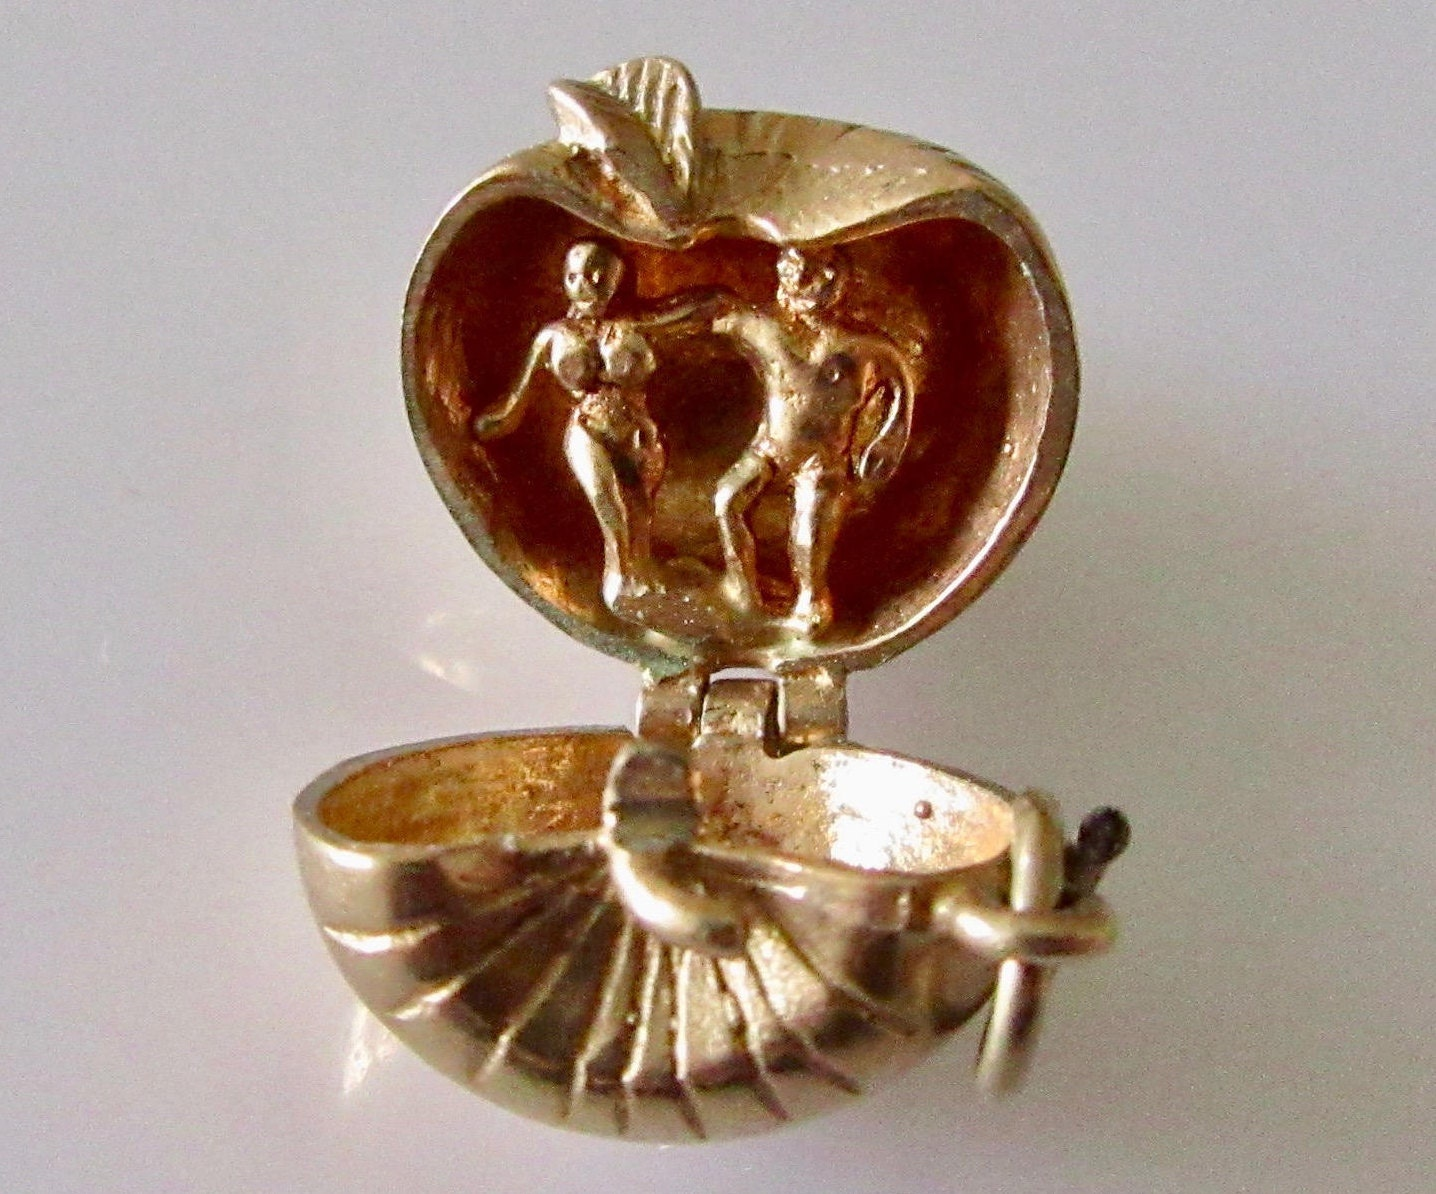 9ct Gold Apple Charm Opens to Adam and Eve